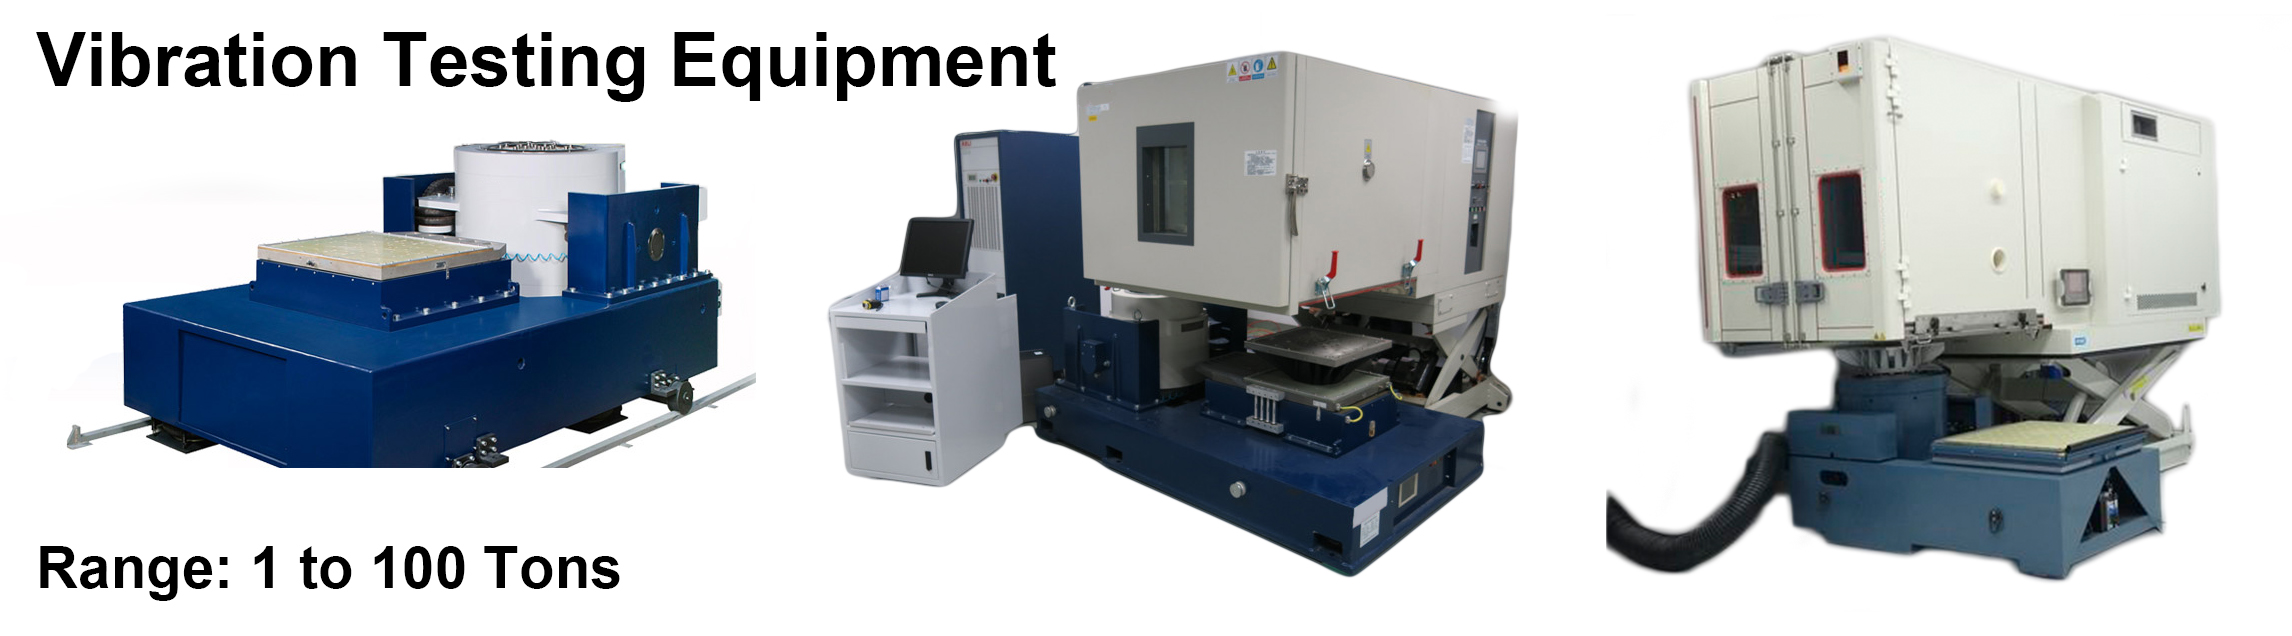 Vibtrationtestingmachinebanner